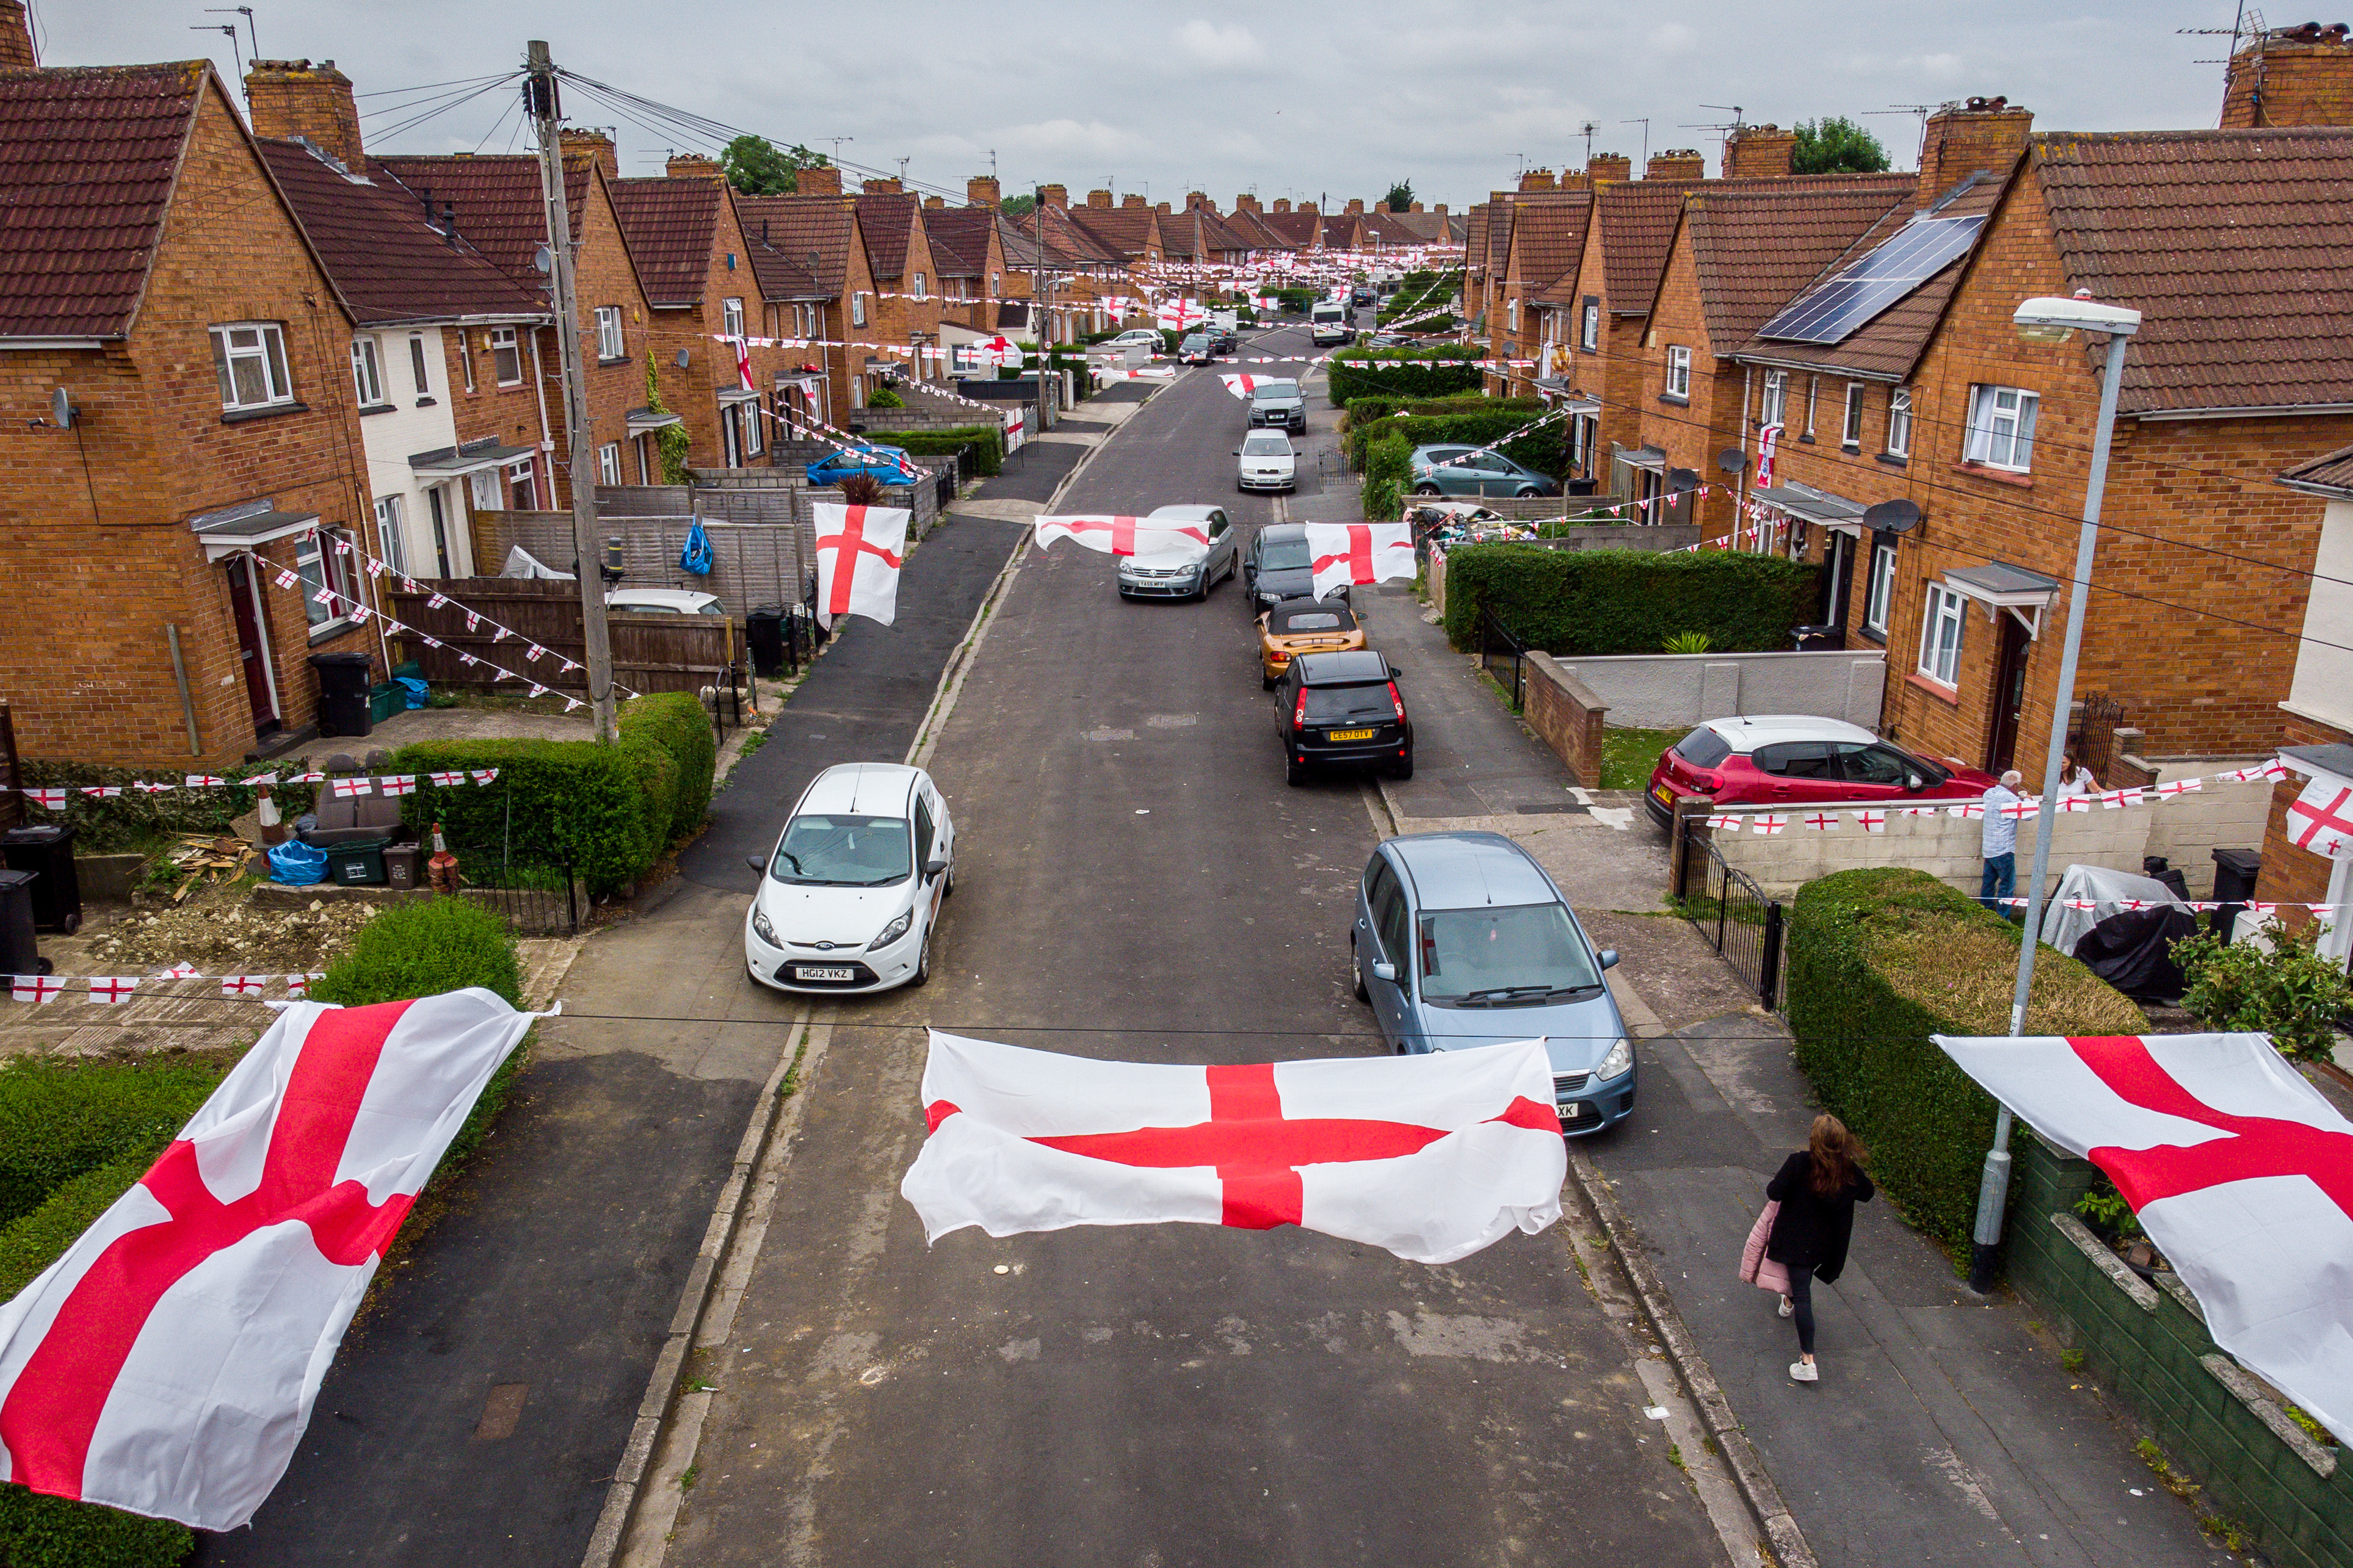 <p>England flags hang across the street in Torrington Avenue, Knowe, Bristol, where residents are showing their support for England during the Euro 2020 tournament. Picture date: Thursday June 24, 2021.</p>